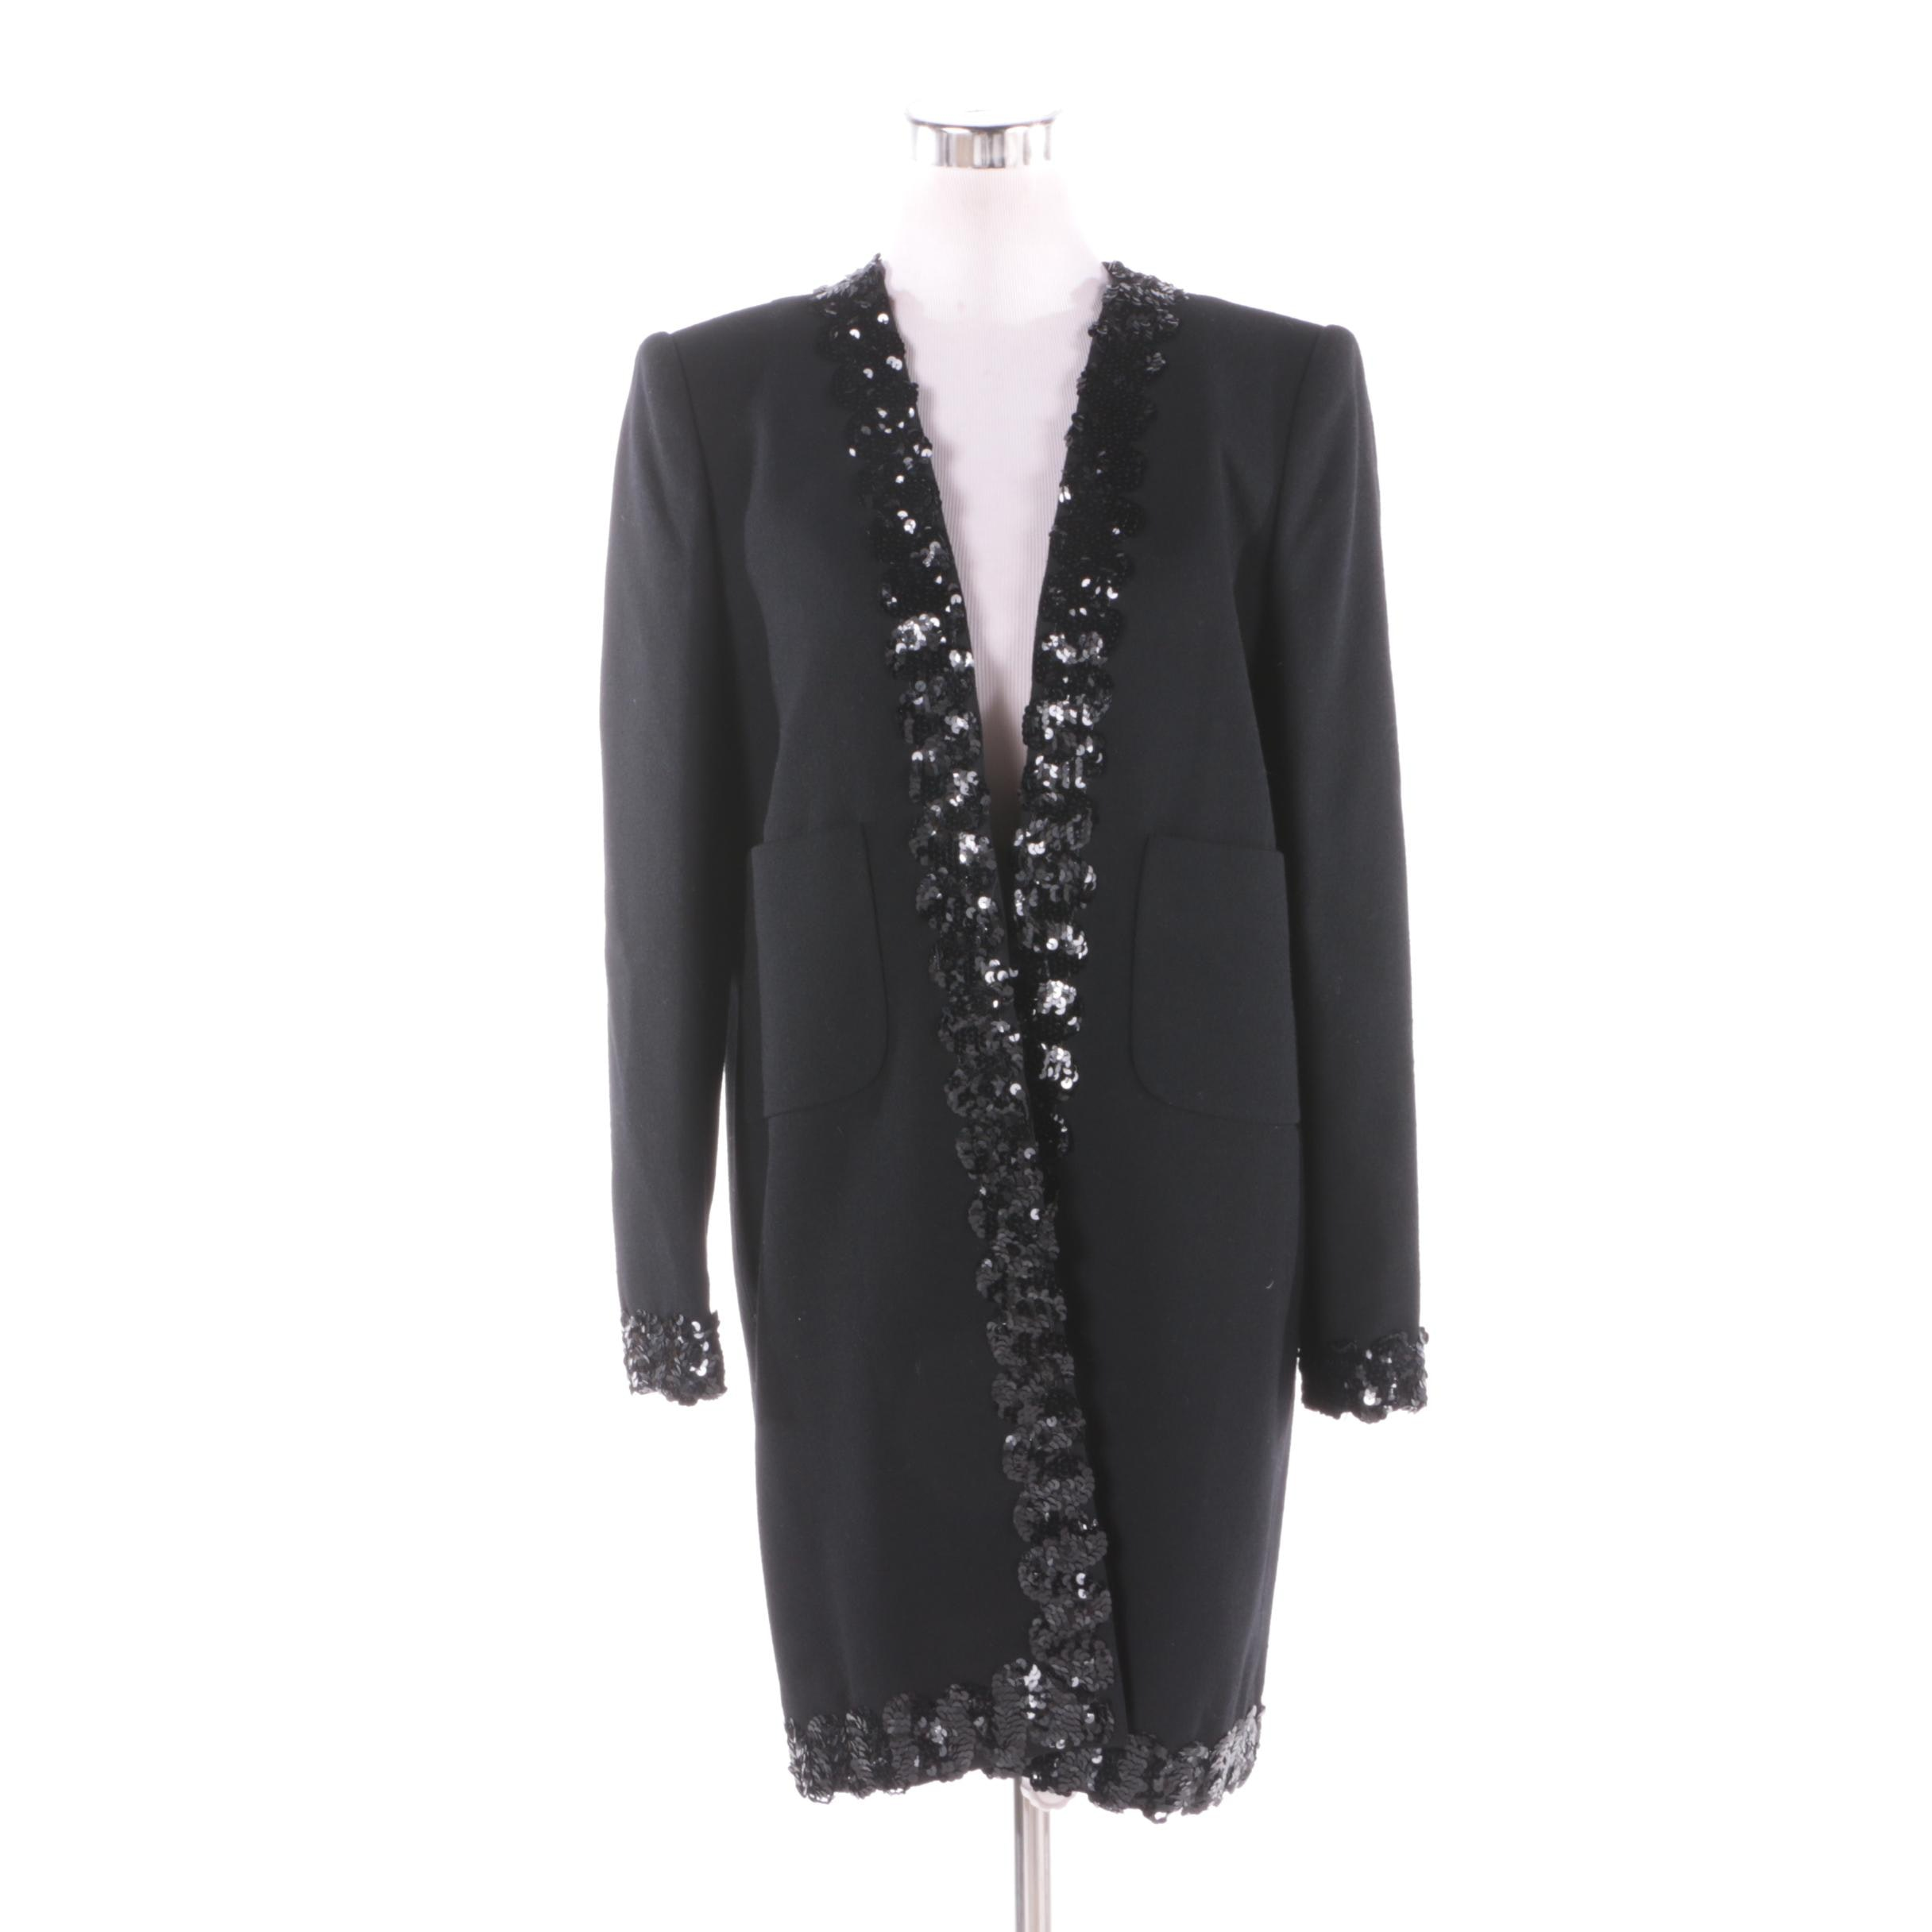 Women's Vintage David Hayes Black Wool Knit Jacket with Sequined Trim